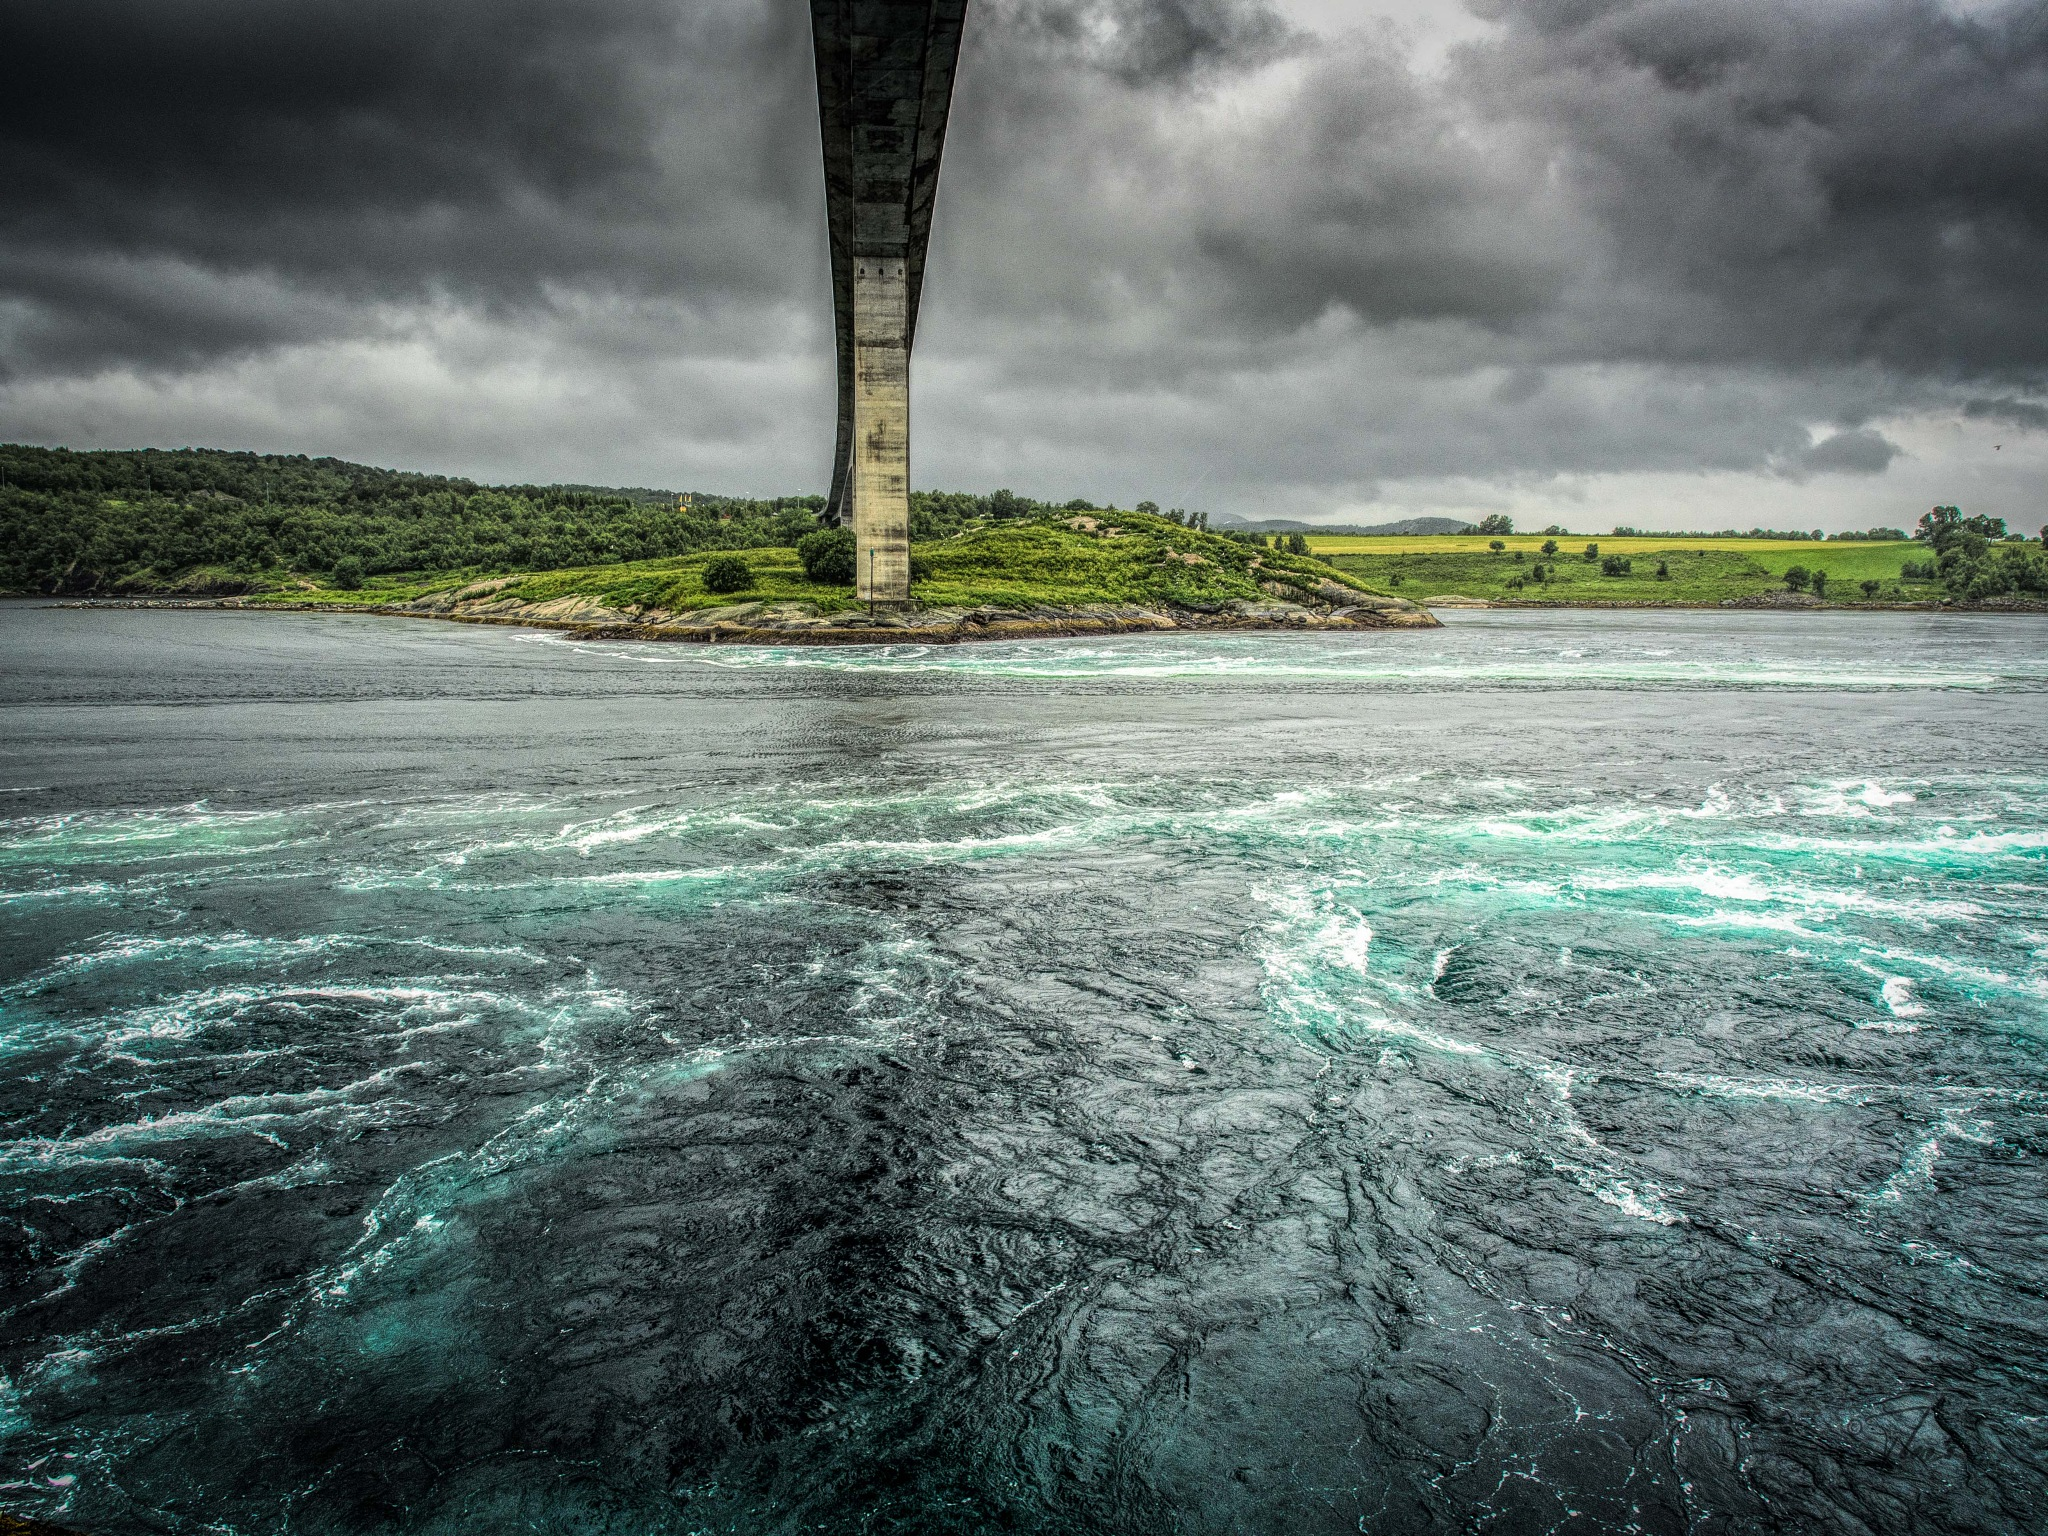 Under the bridge is a strong tidal by Thore's photo